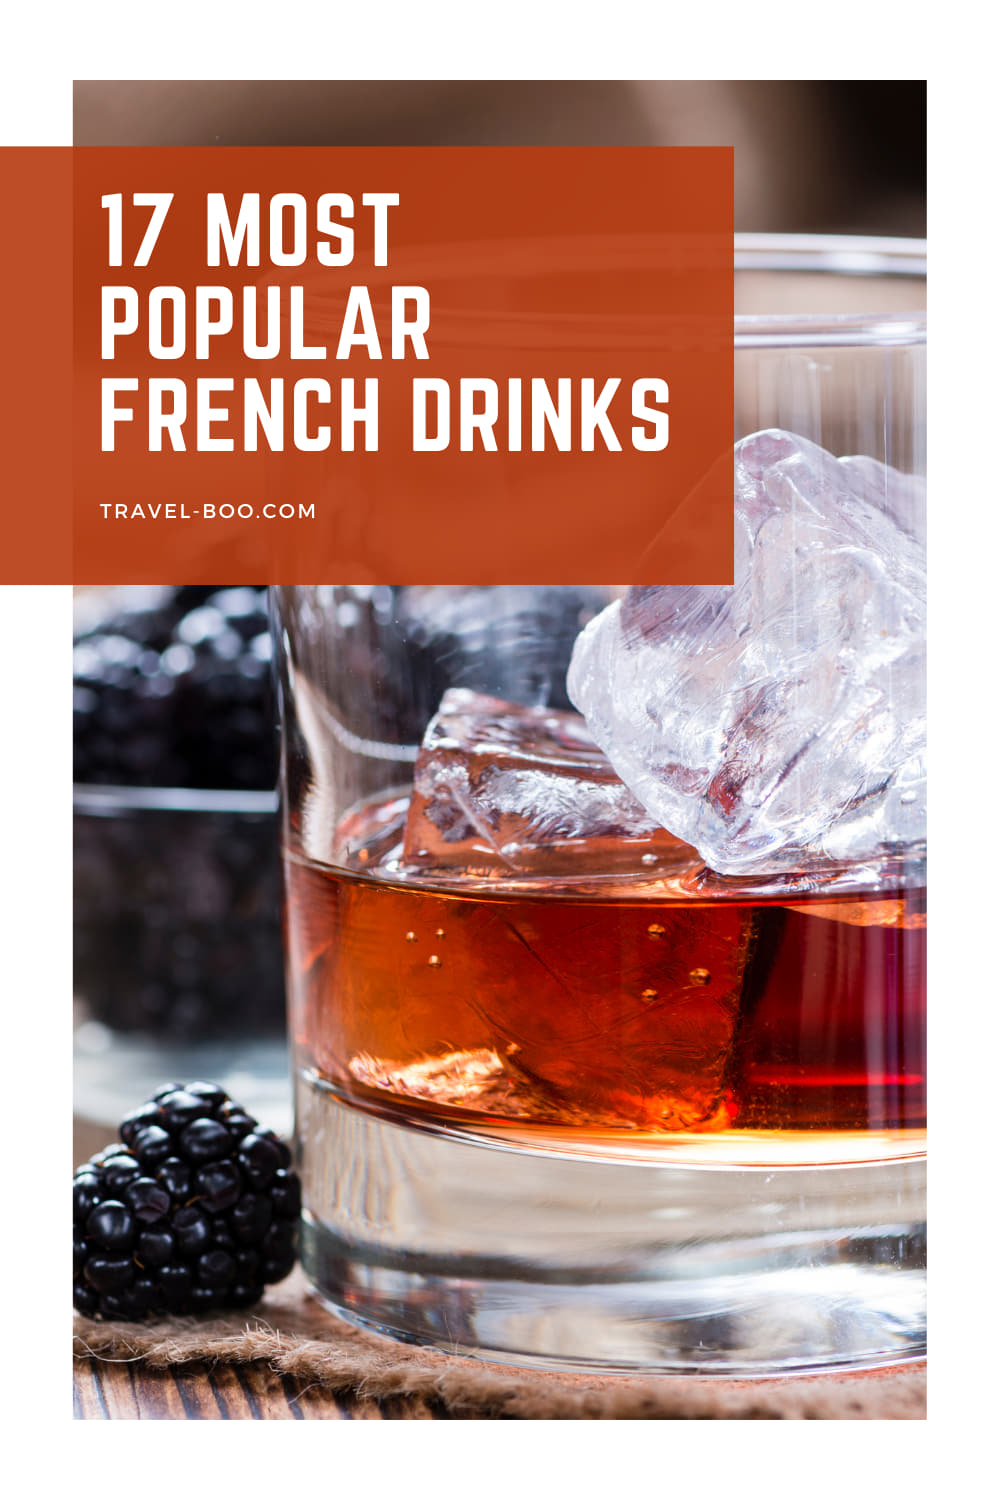 17 Most Popular French Drinks to try out when Visiting France! France Travel, French Drinks, Drinks from France, France Travel Tips, France Travel Itinerary, France Drinks.